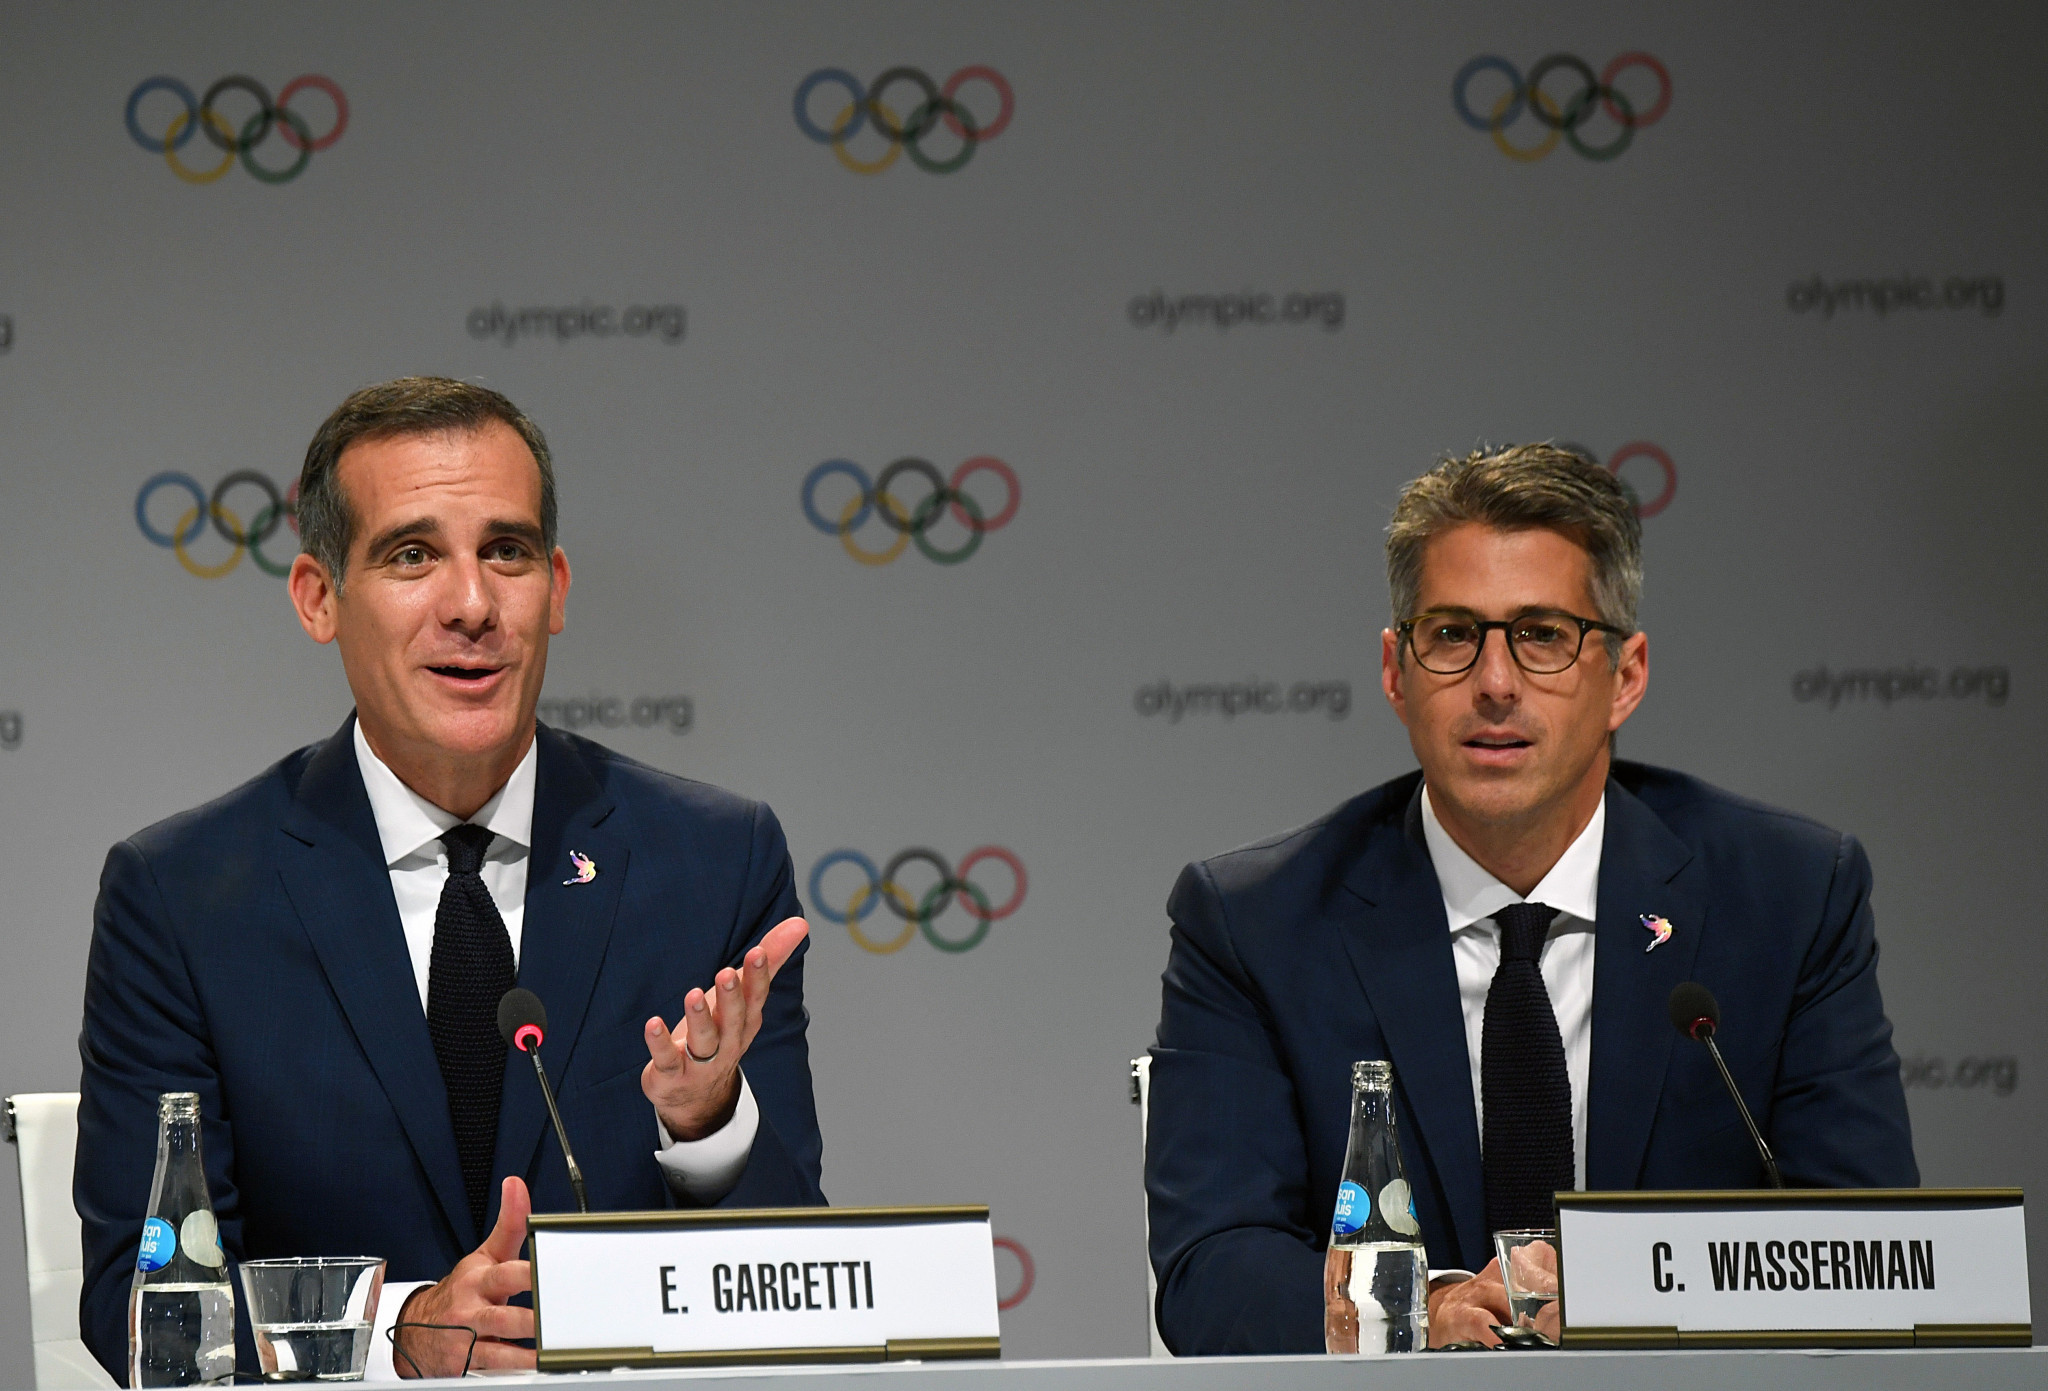 Casey Wasserman helped secure Los Angeles the 2028 Olympic Games alongside the city's Mayor Eric Garcetti ©Getty Images